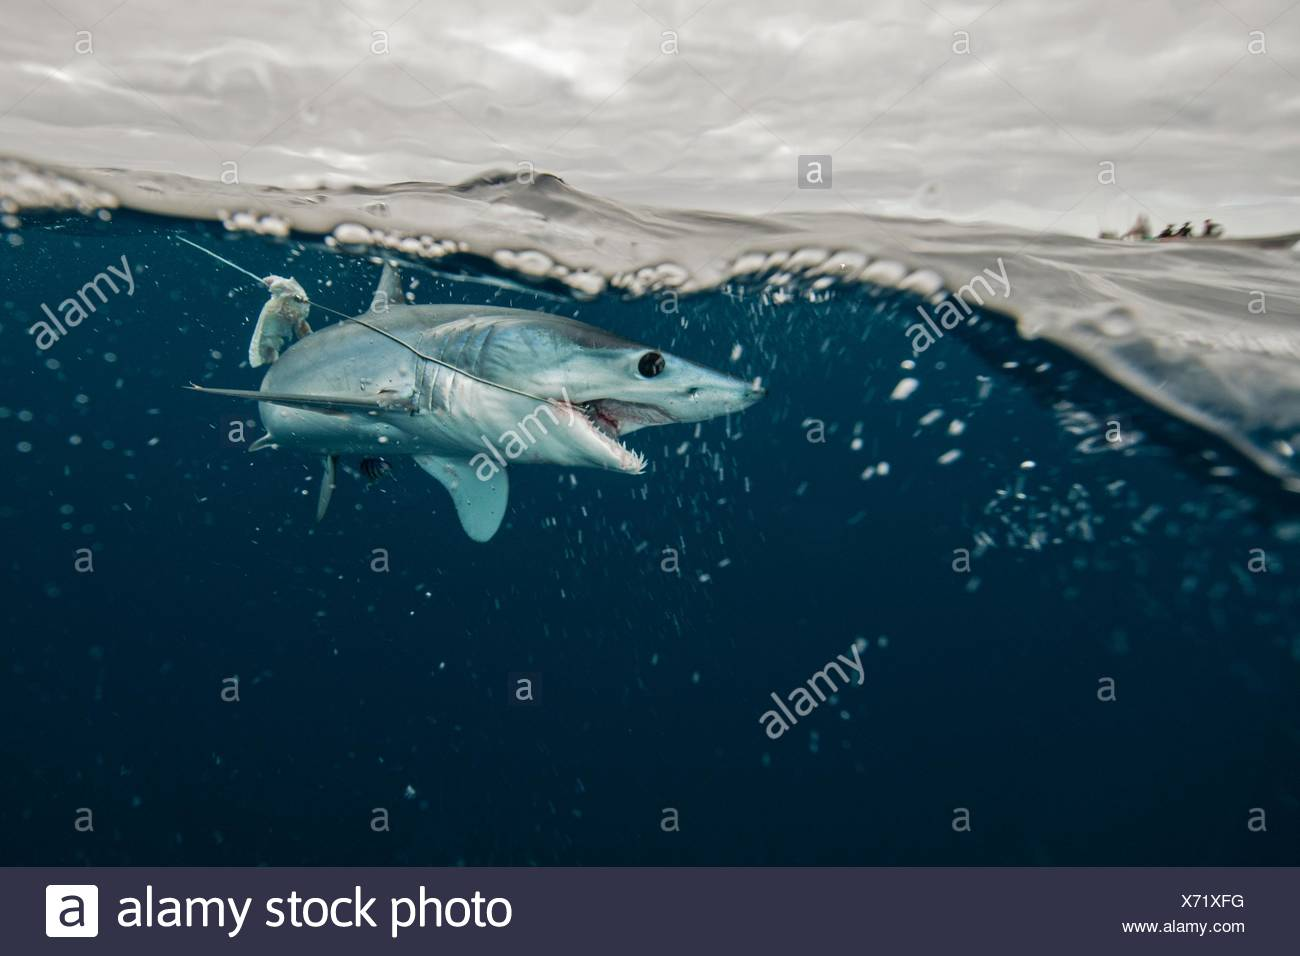 Underwater view of young mako shark struggling with fishing line, Pacific side, Baja California, Mexico - Stock Image